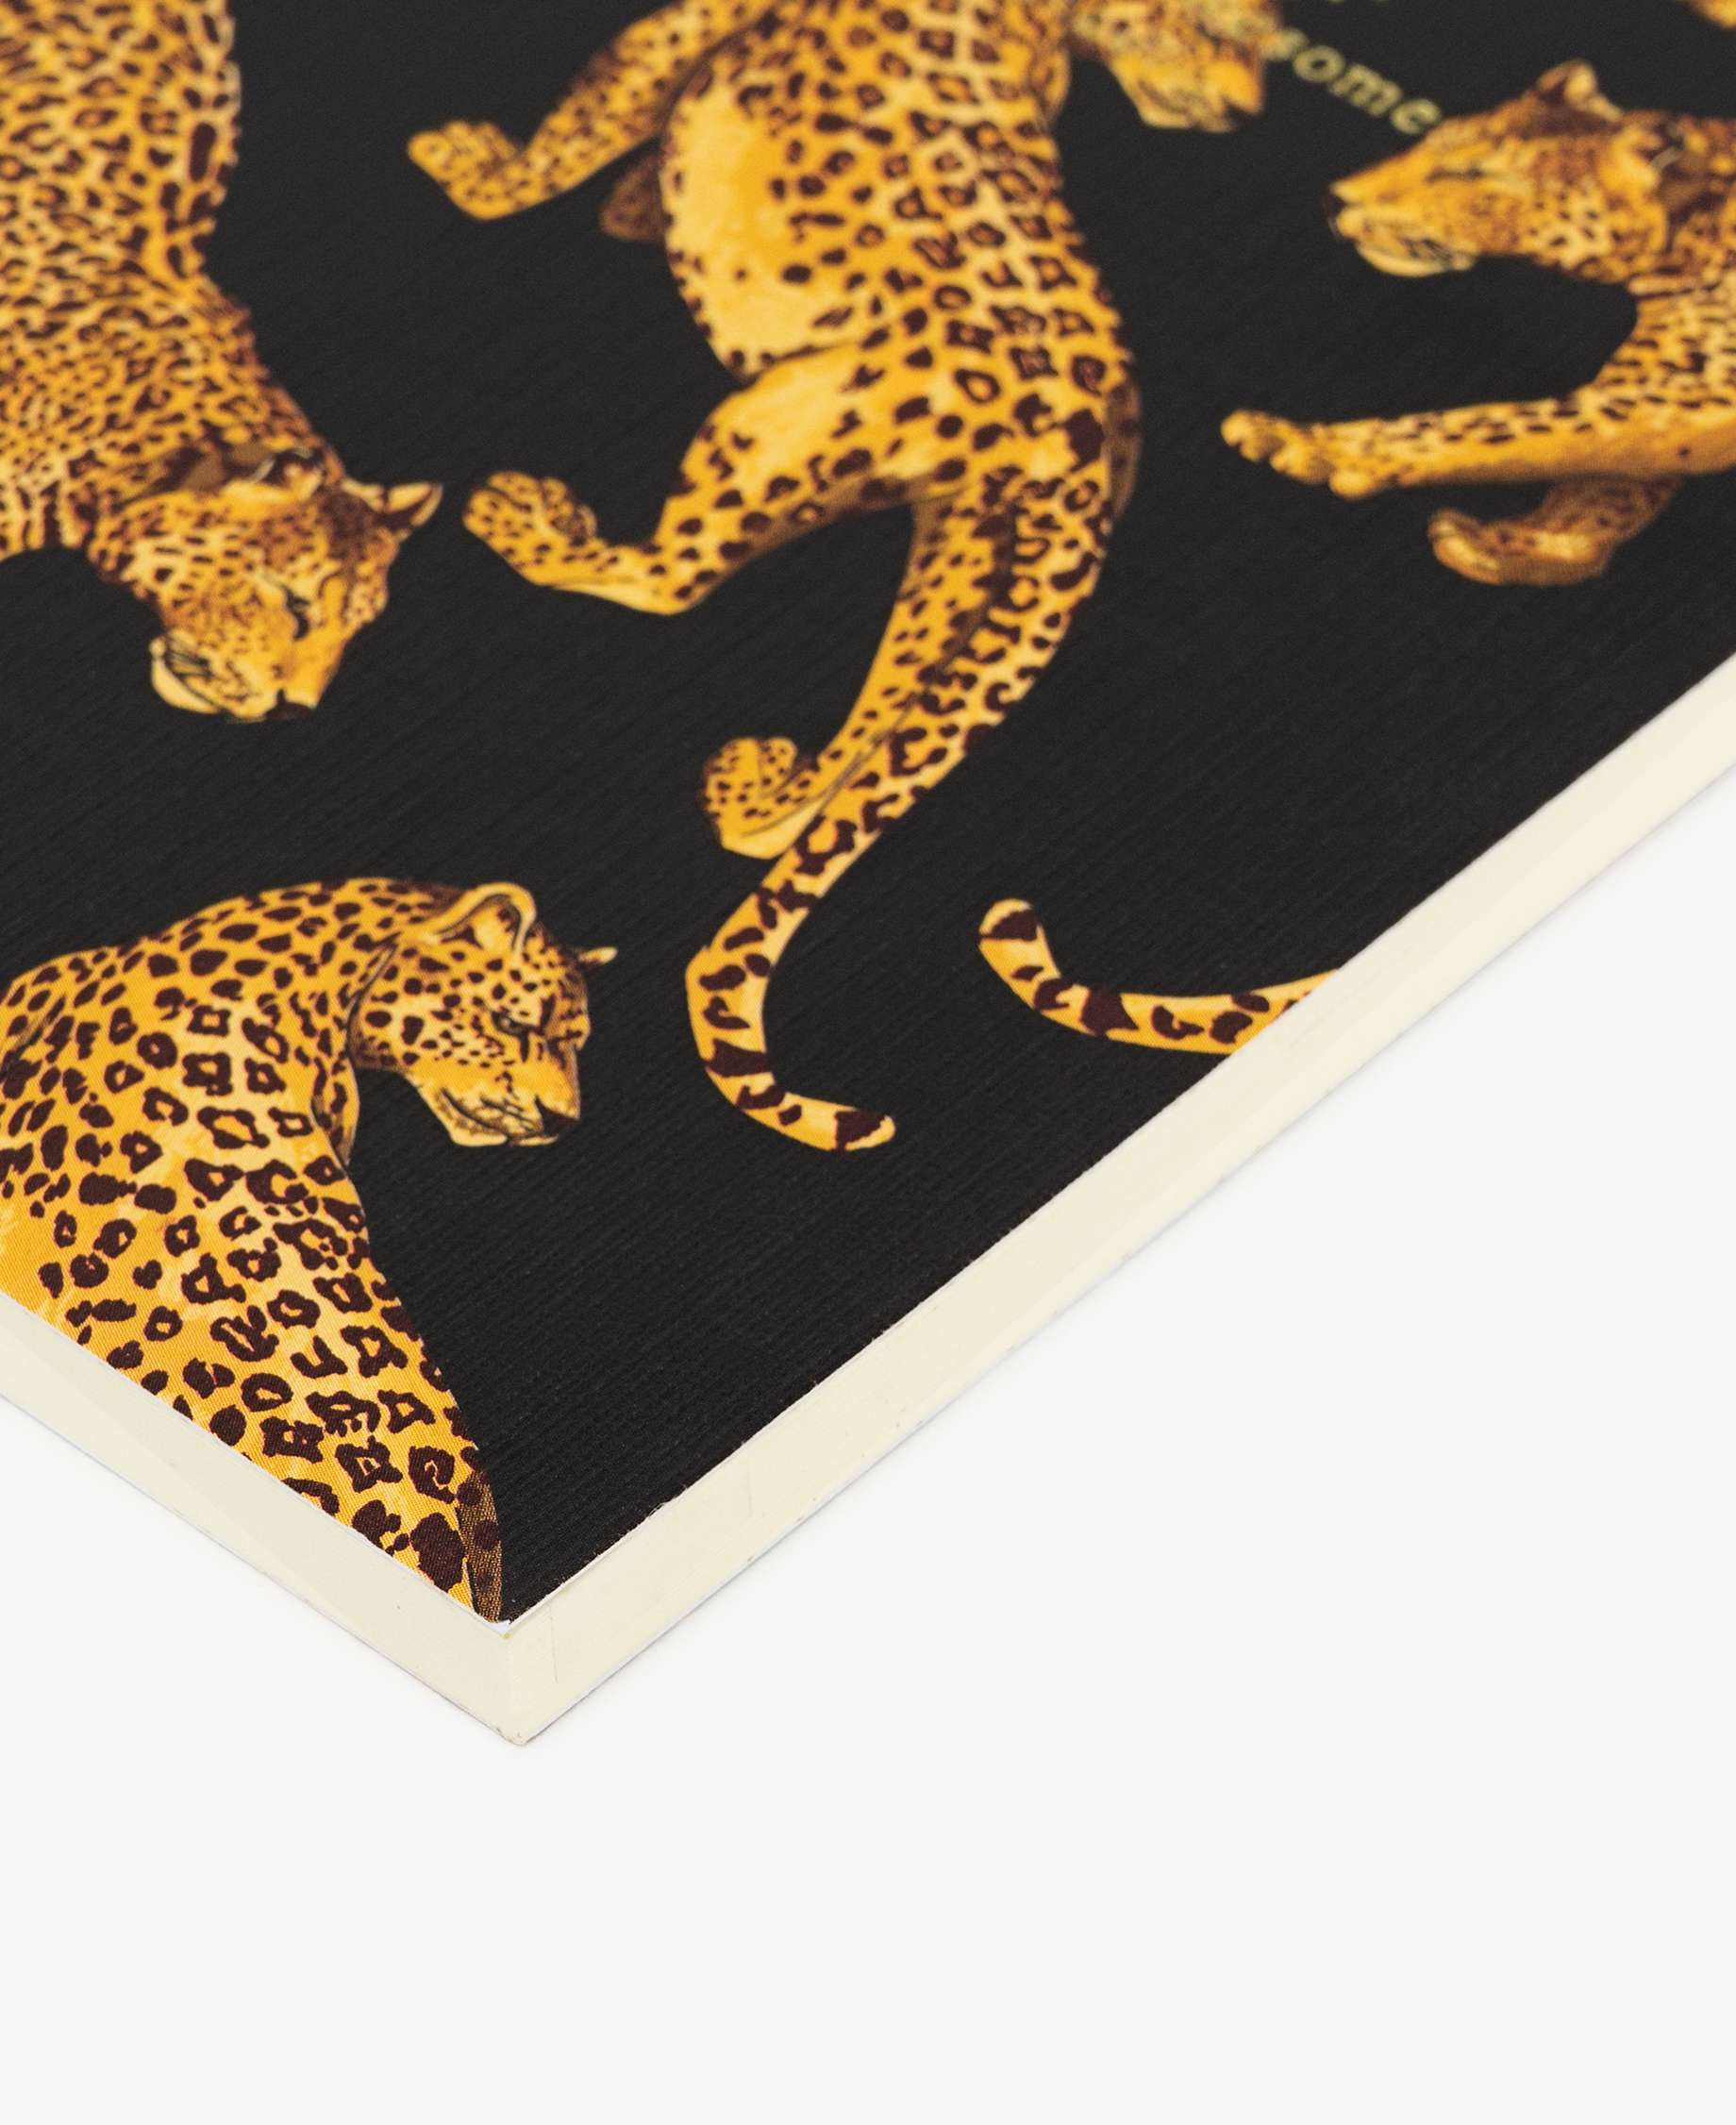 yellow leopard journal notebook